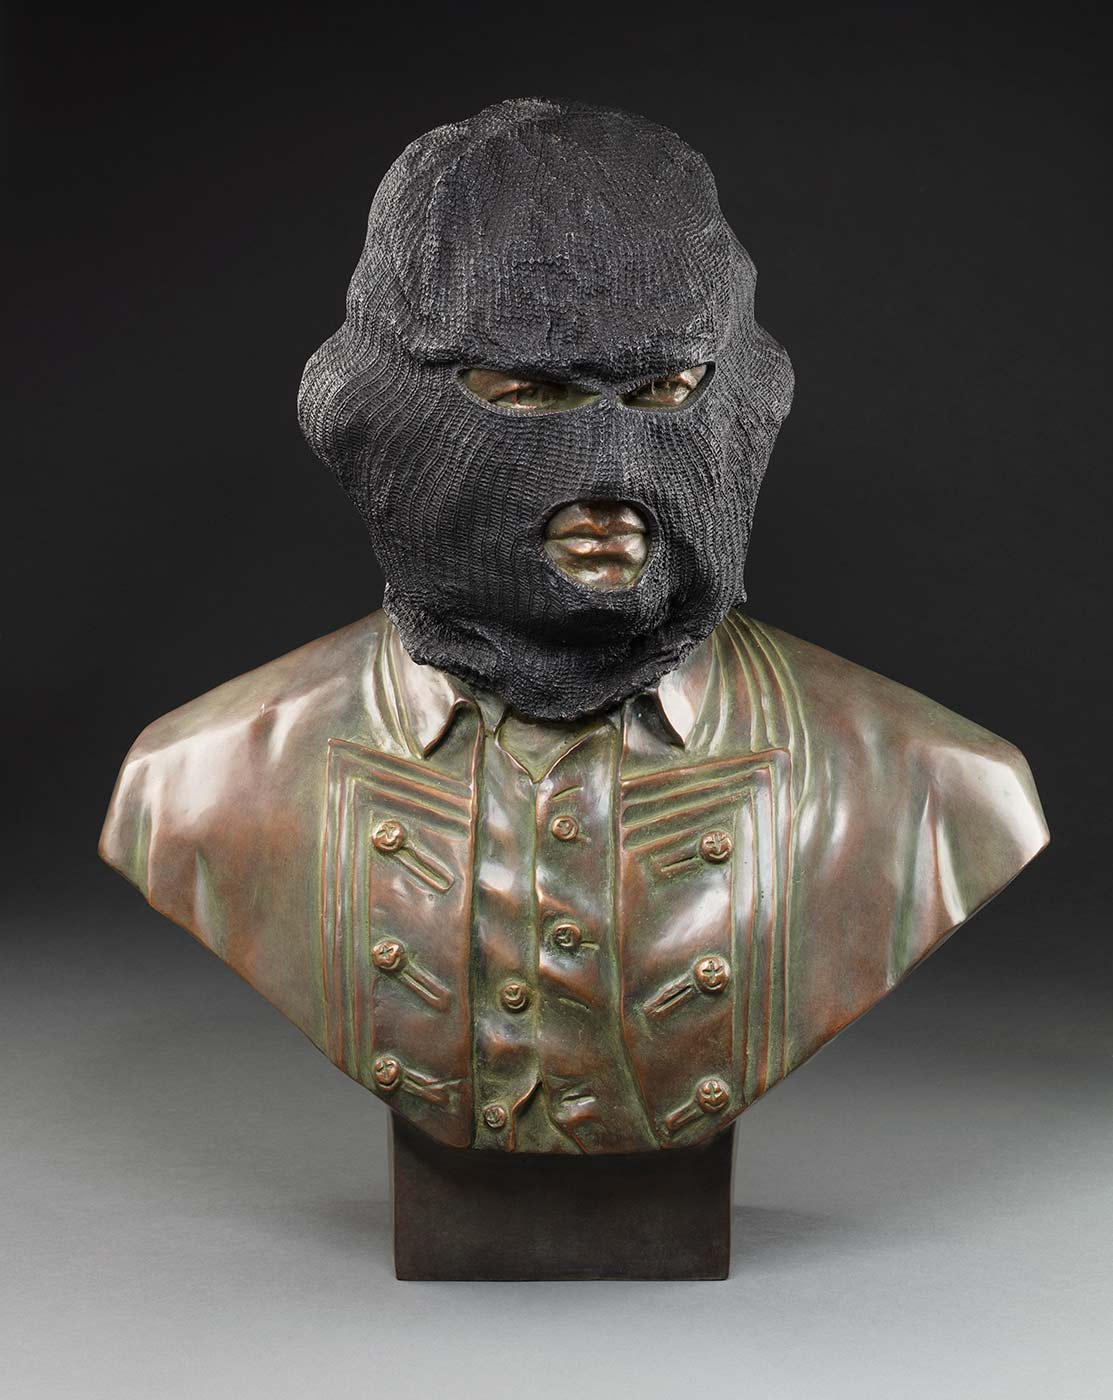 A bronze bust of a males head with a ponytail wearing a dark grey Balaklava.